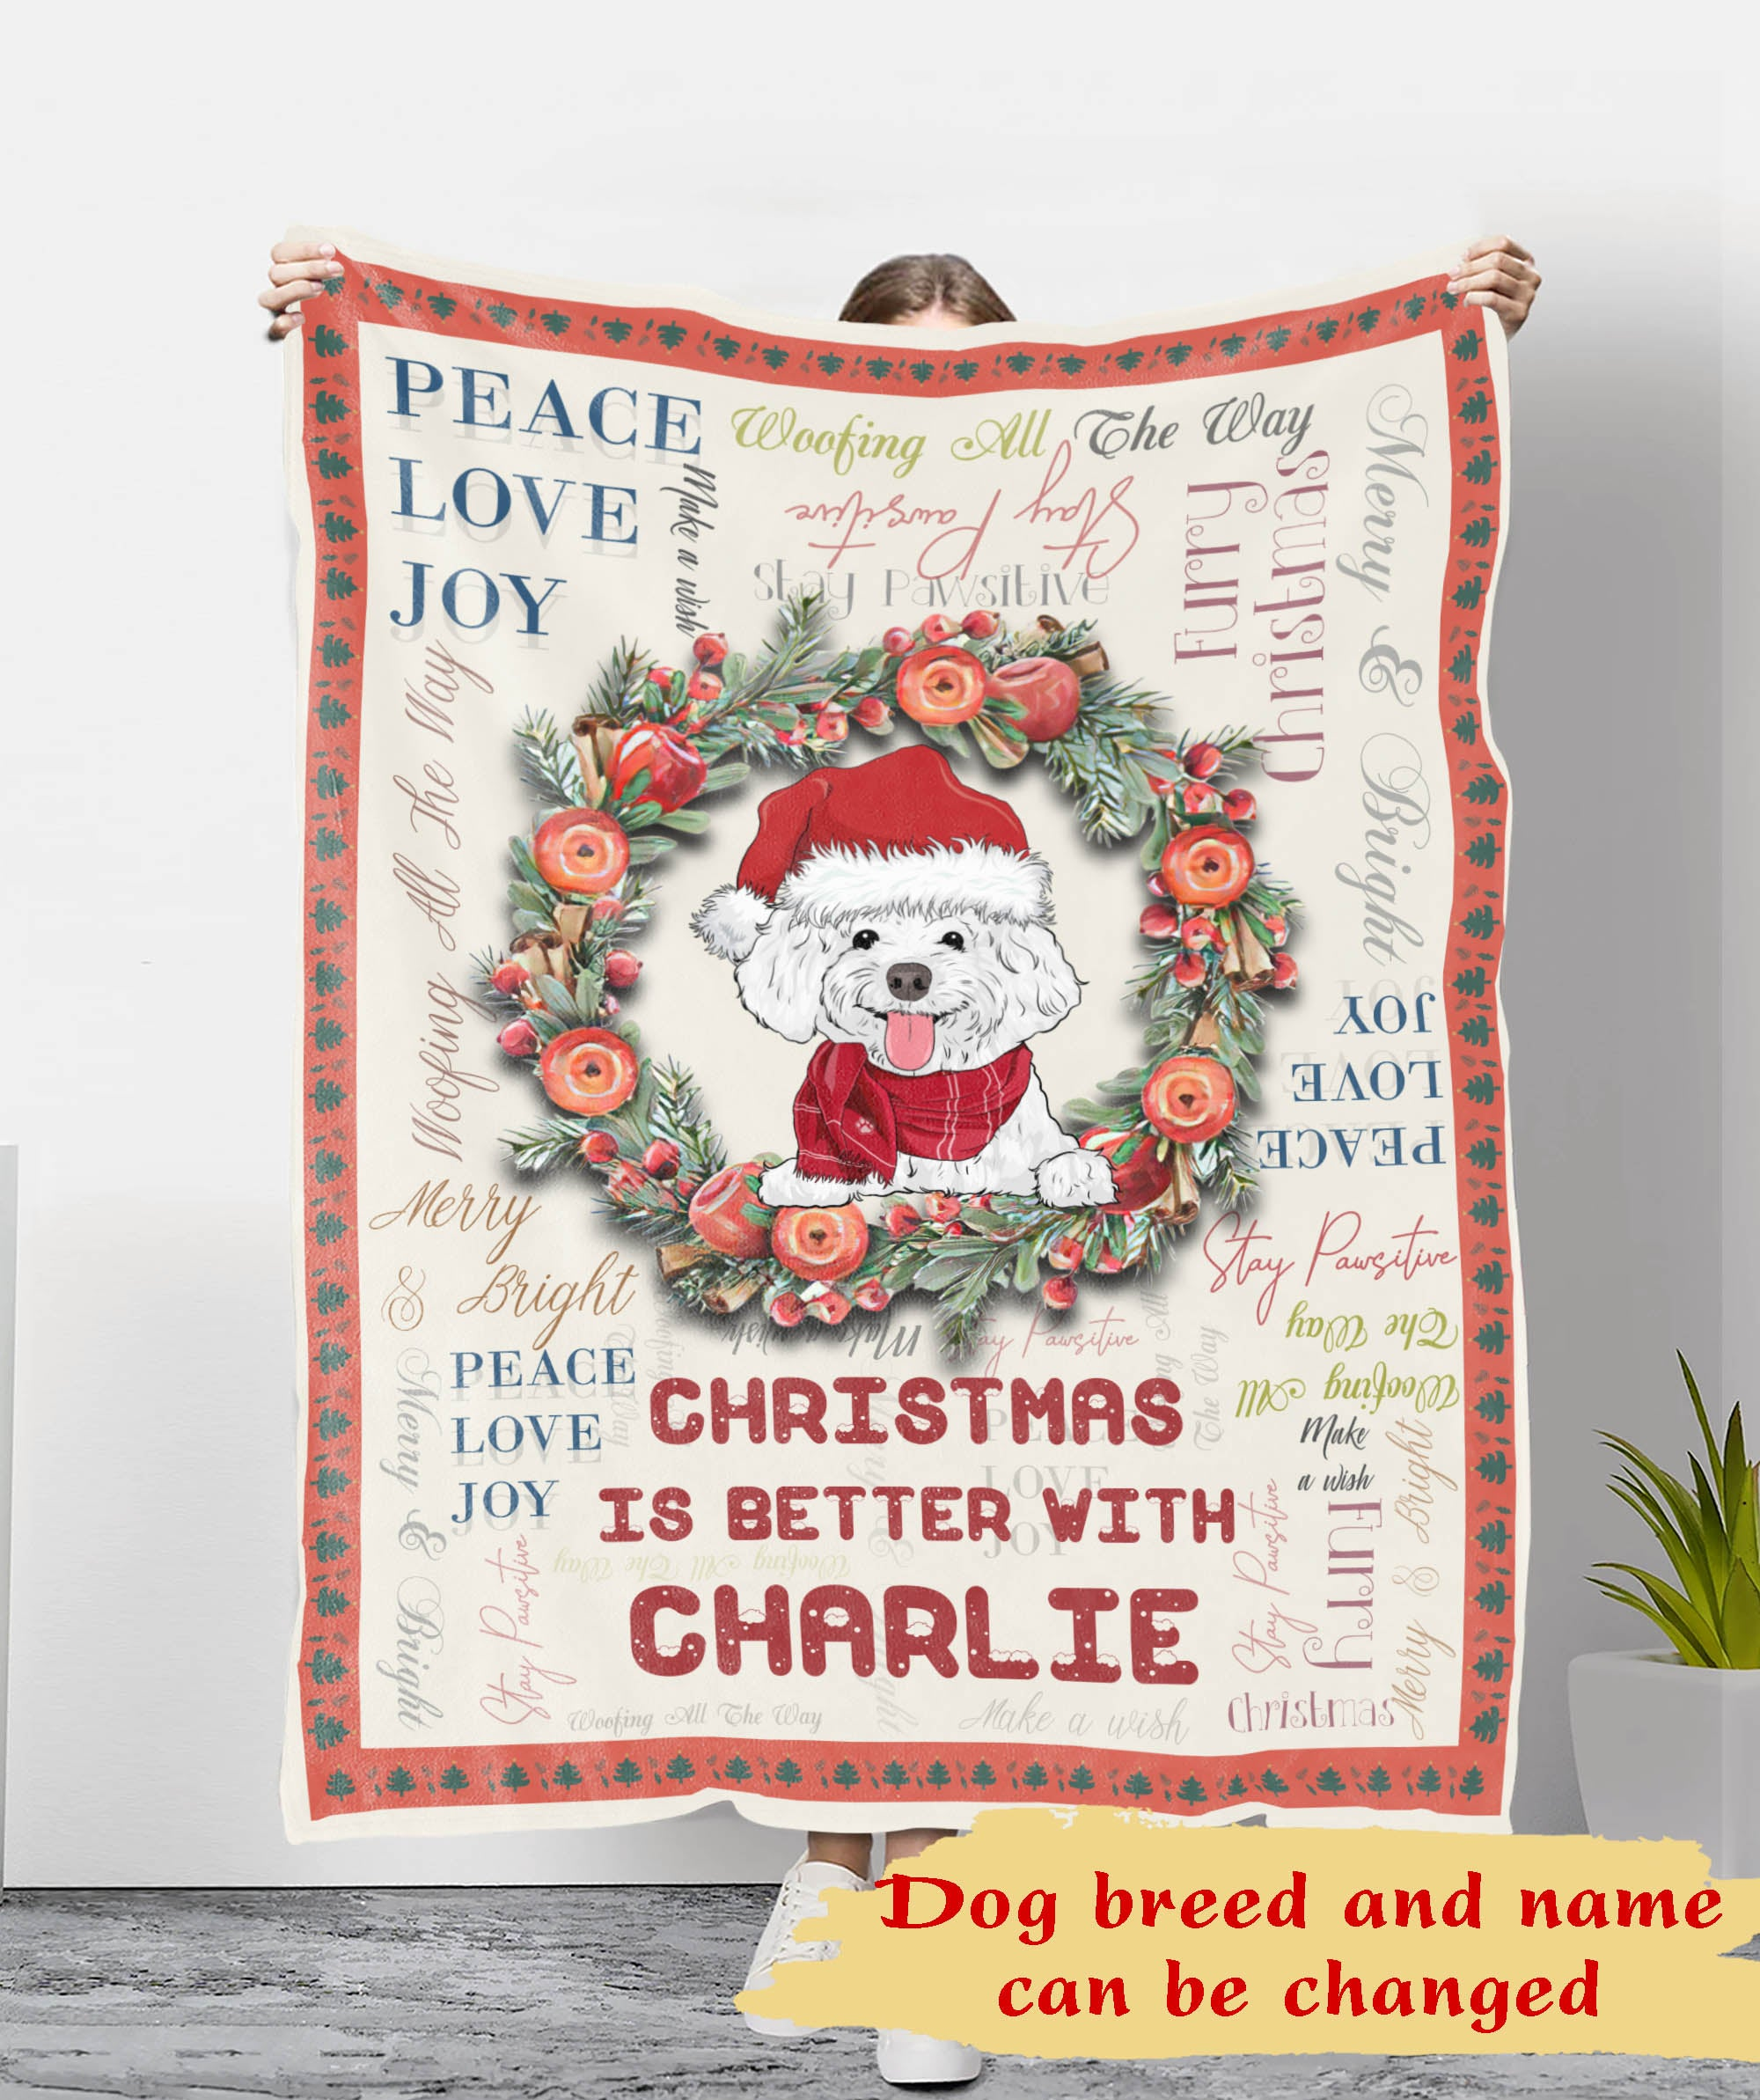 Merry Woofing Christmas - Personalized Custom Fleece Blanket - Christmas Gifts